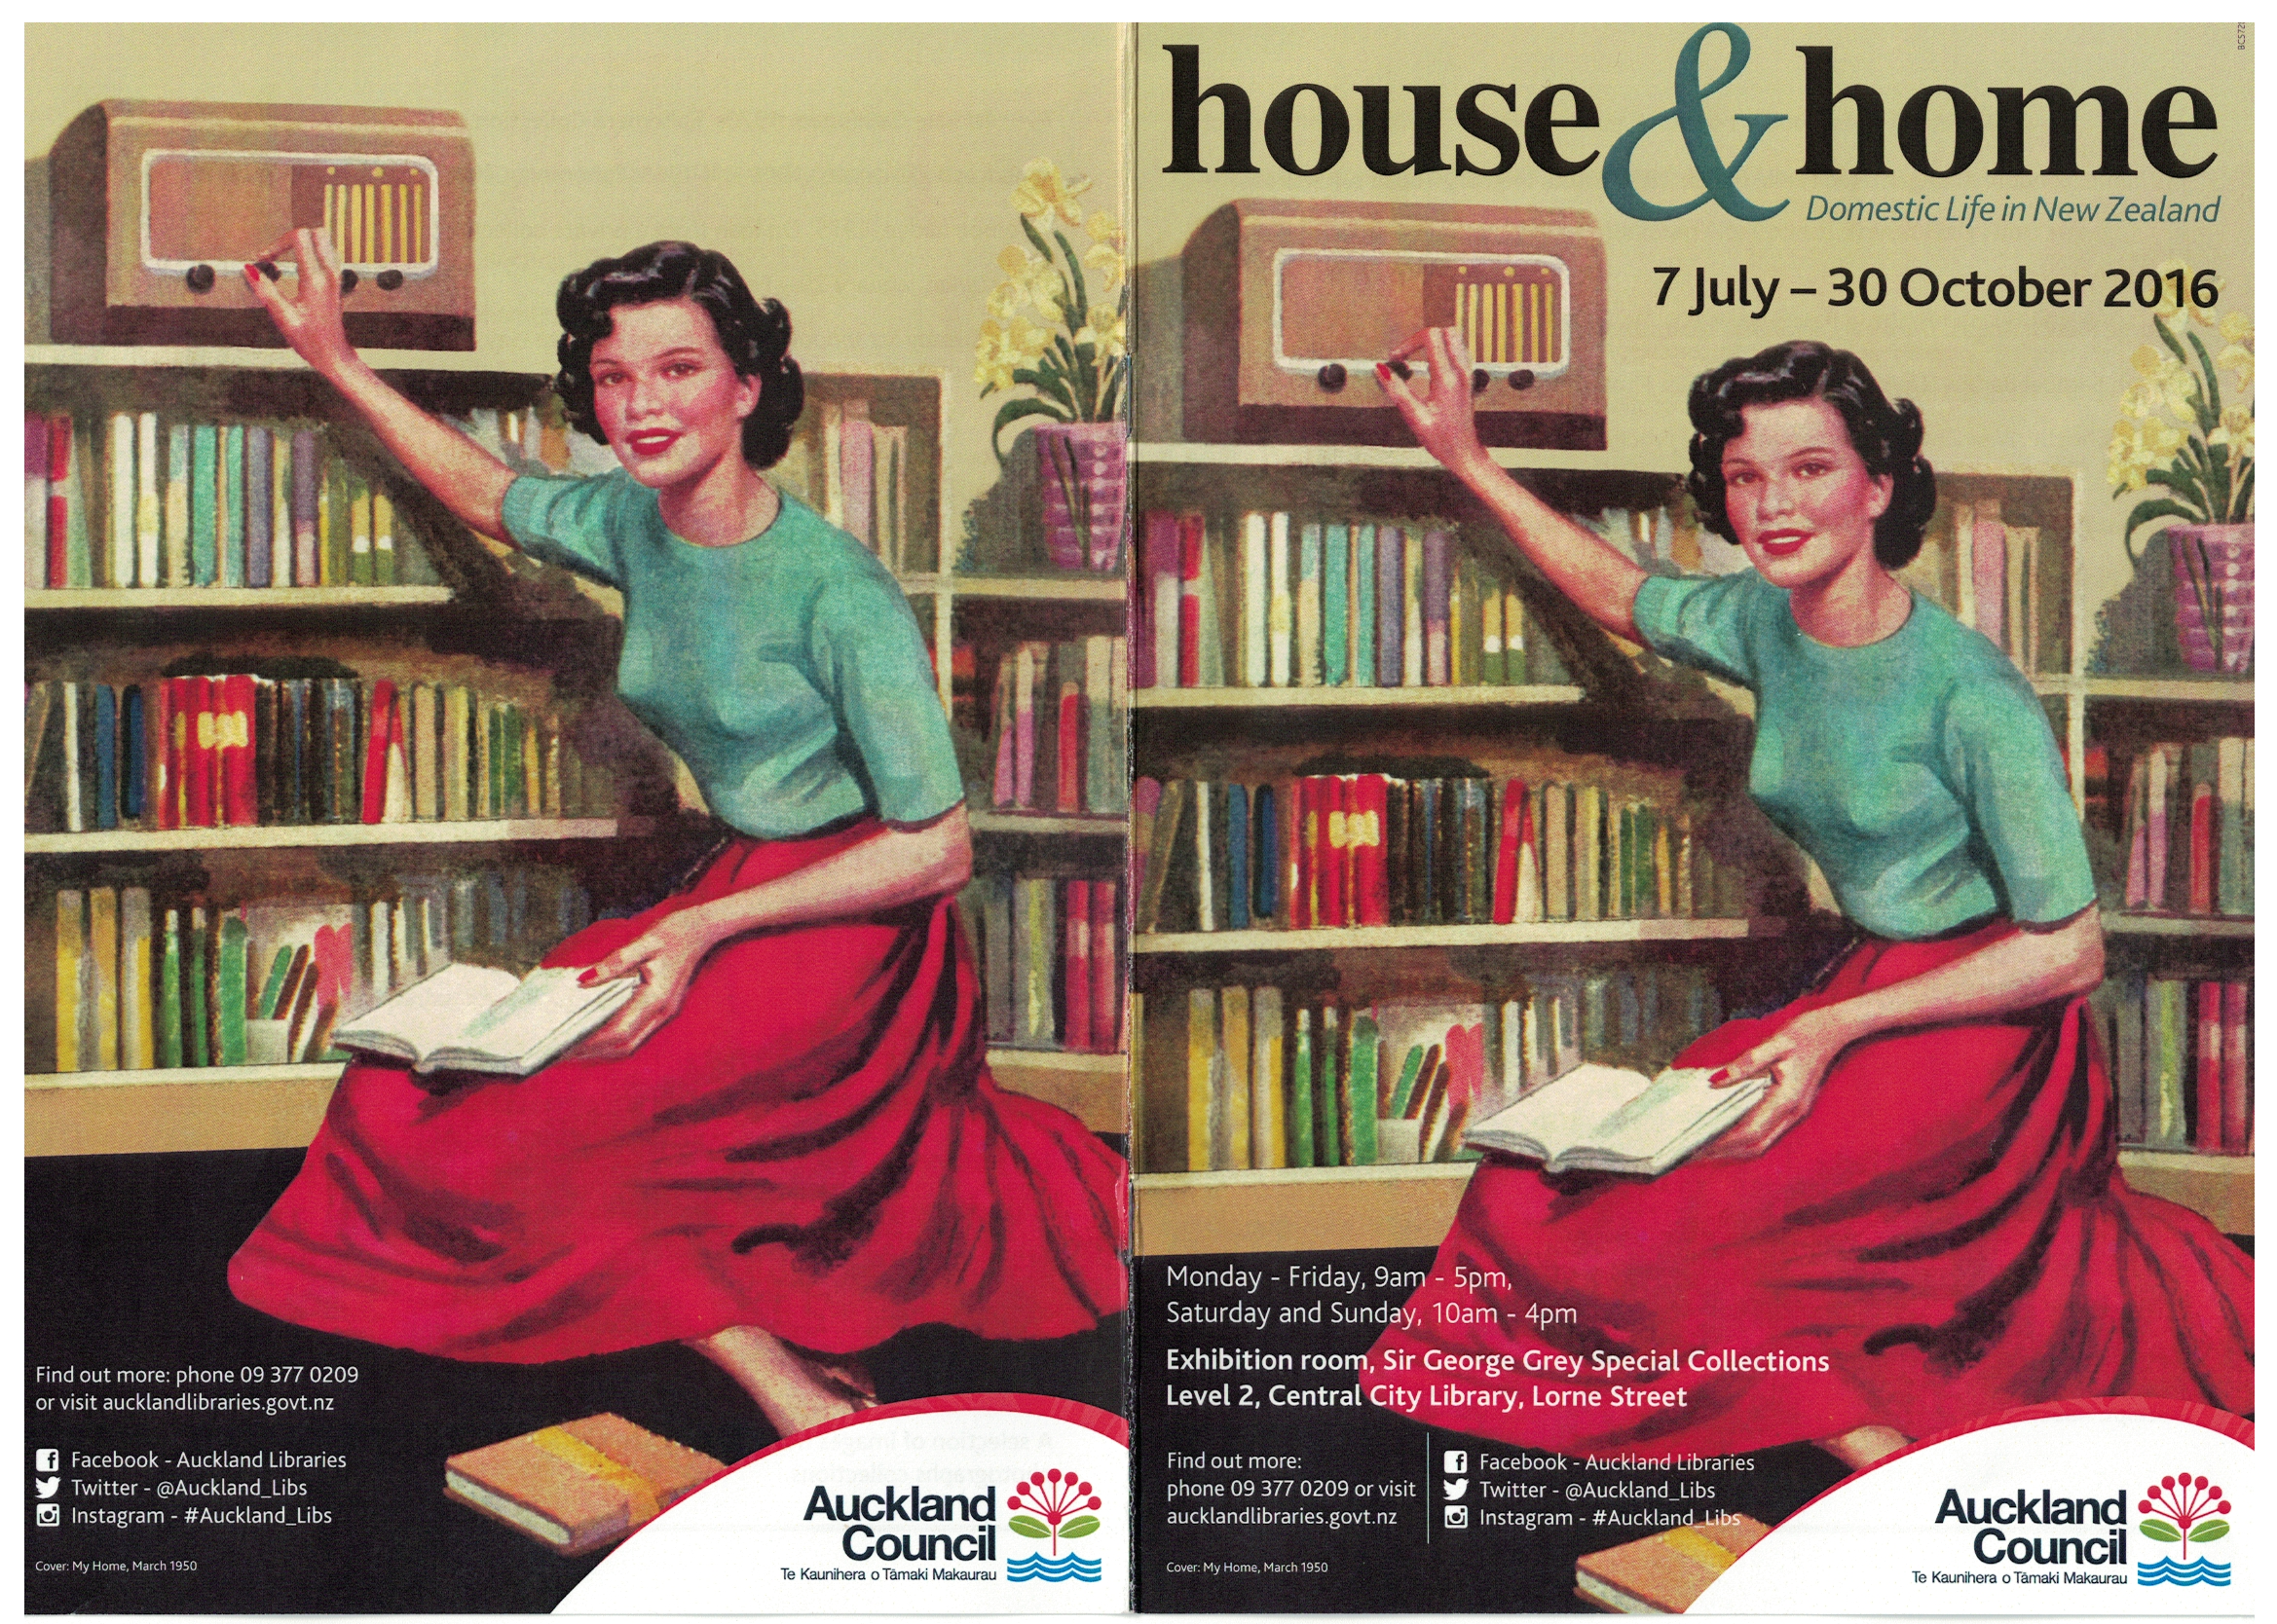 house & home: Domestic Life in New Zealand